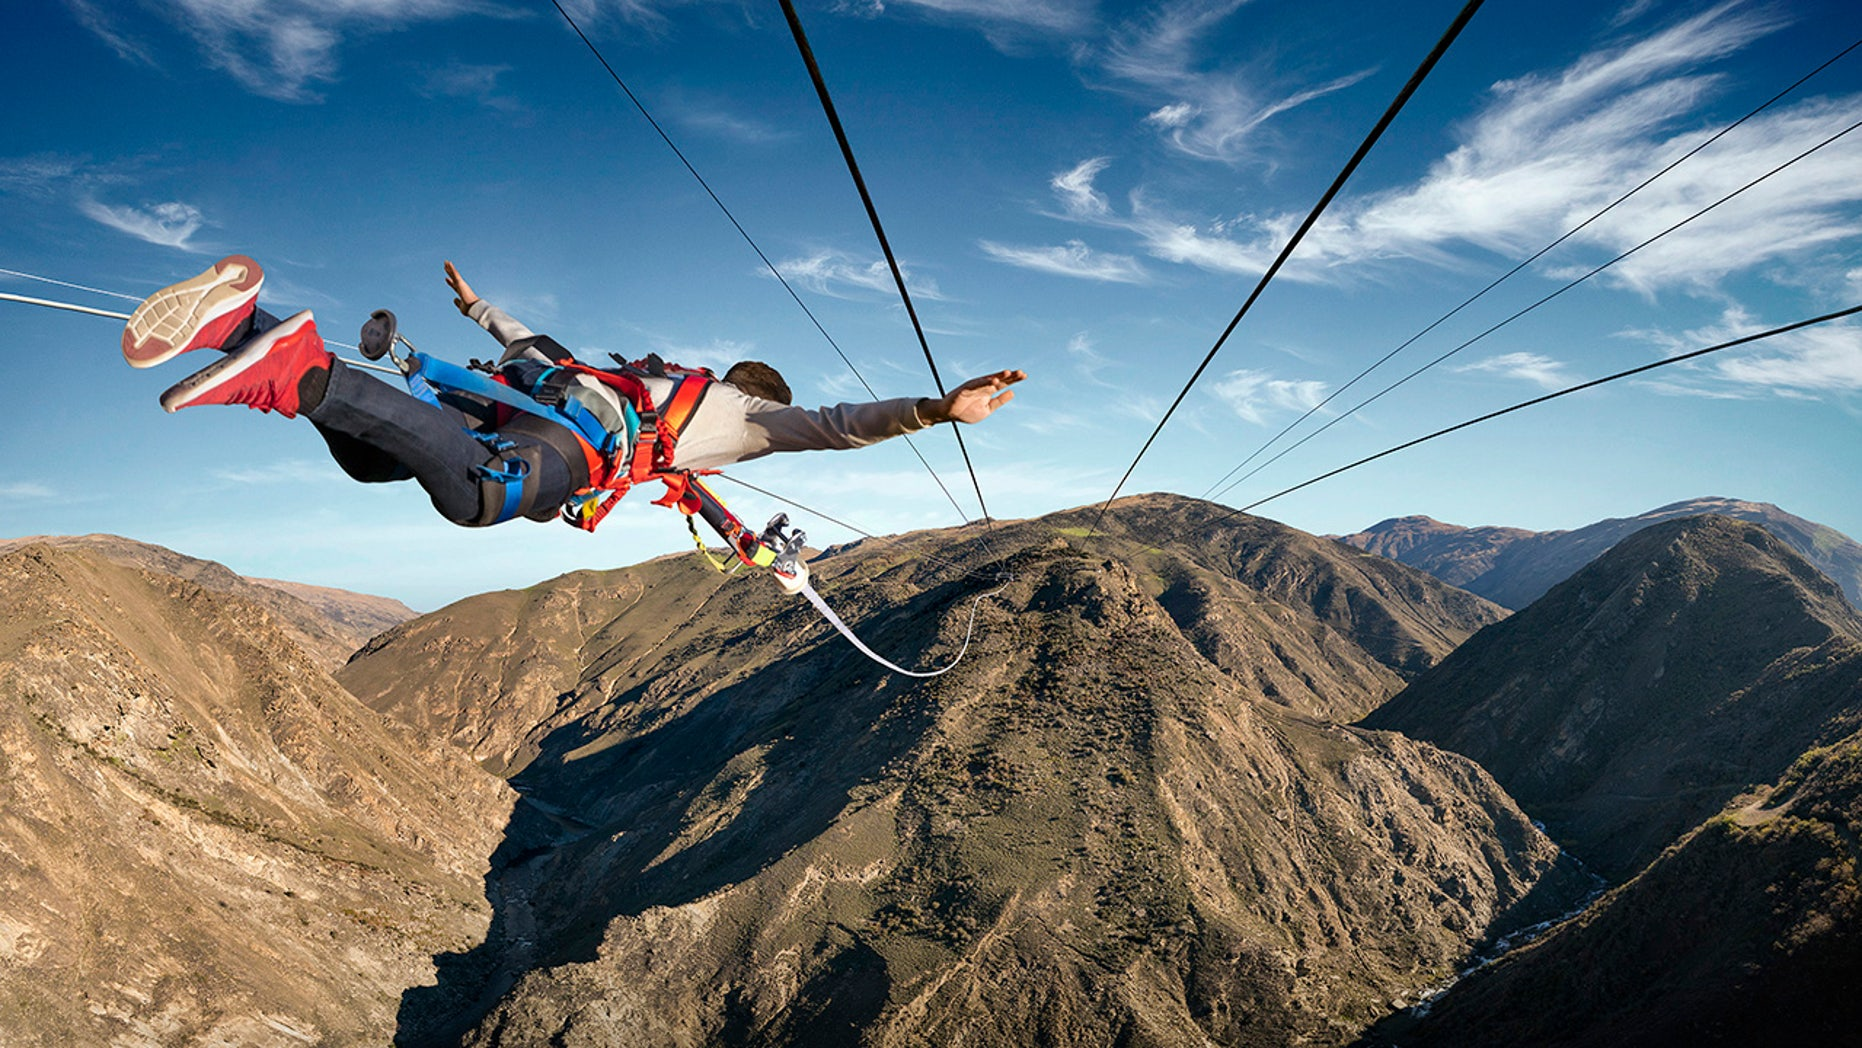 """The Nevis Catapult is billed as """"the biggest and most extreme catapult in the world."""""""